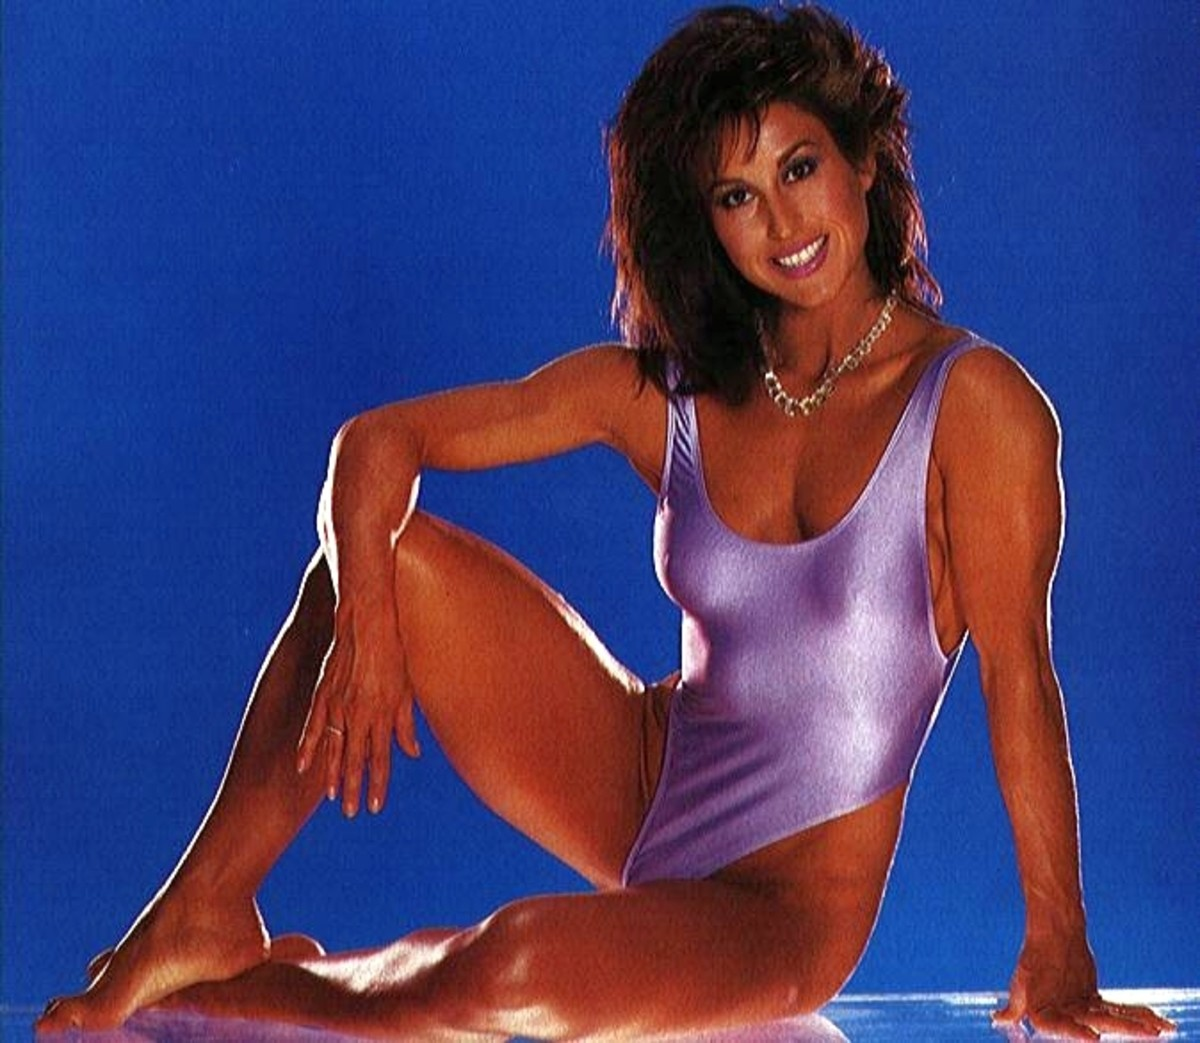 Yes...In the beginning, this is what a female bodybuilder looked like.